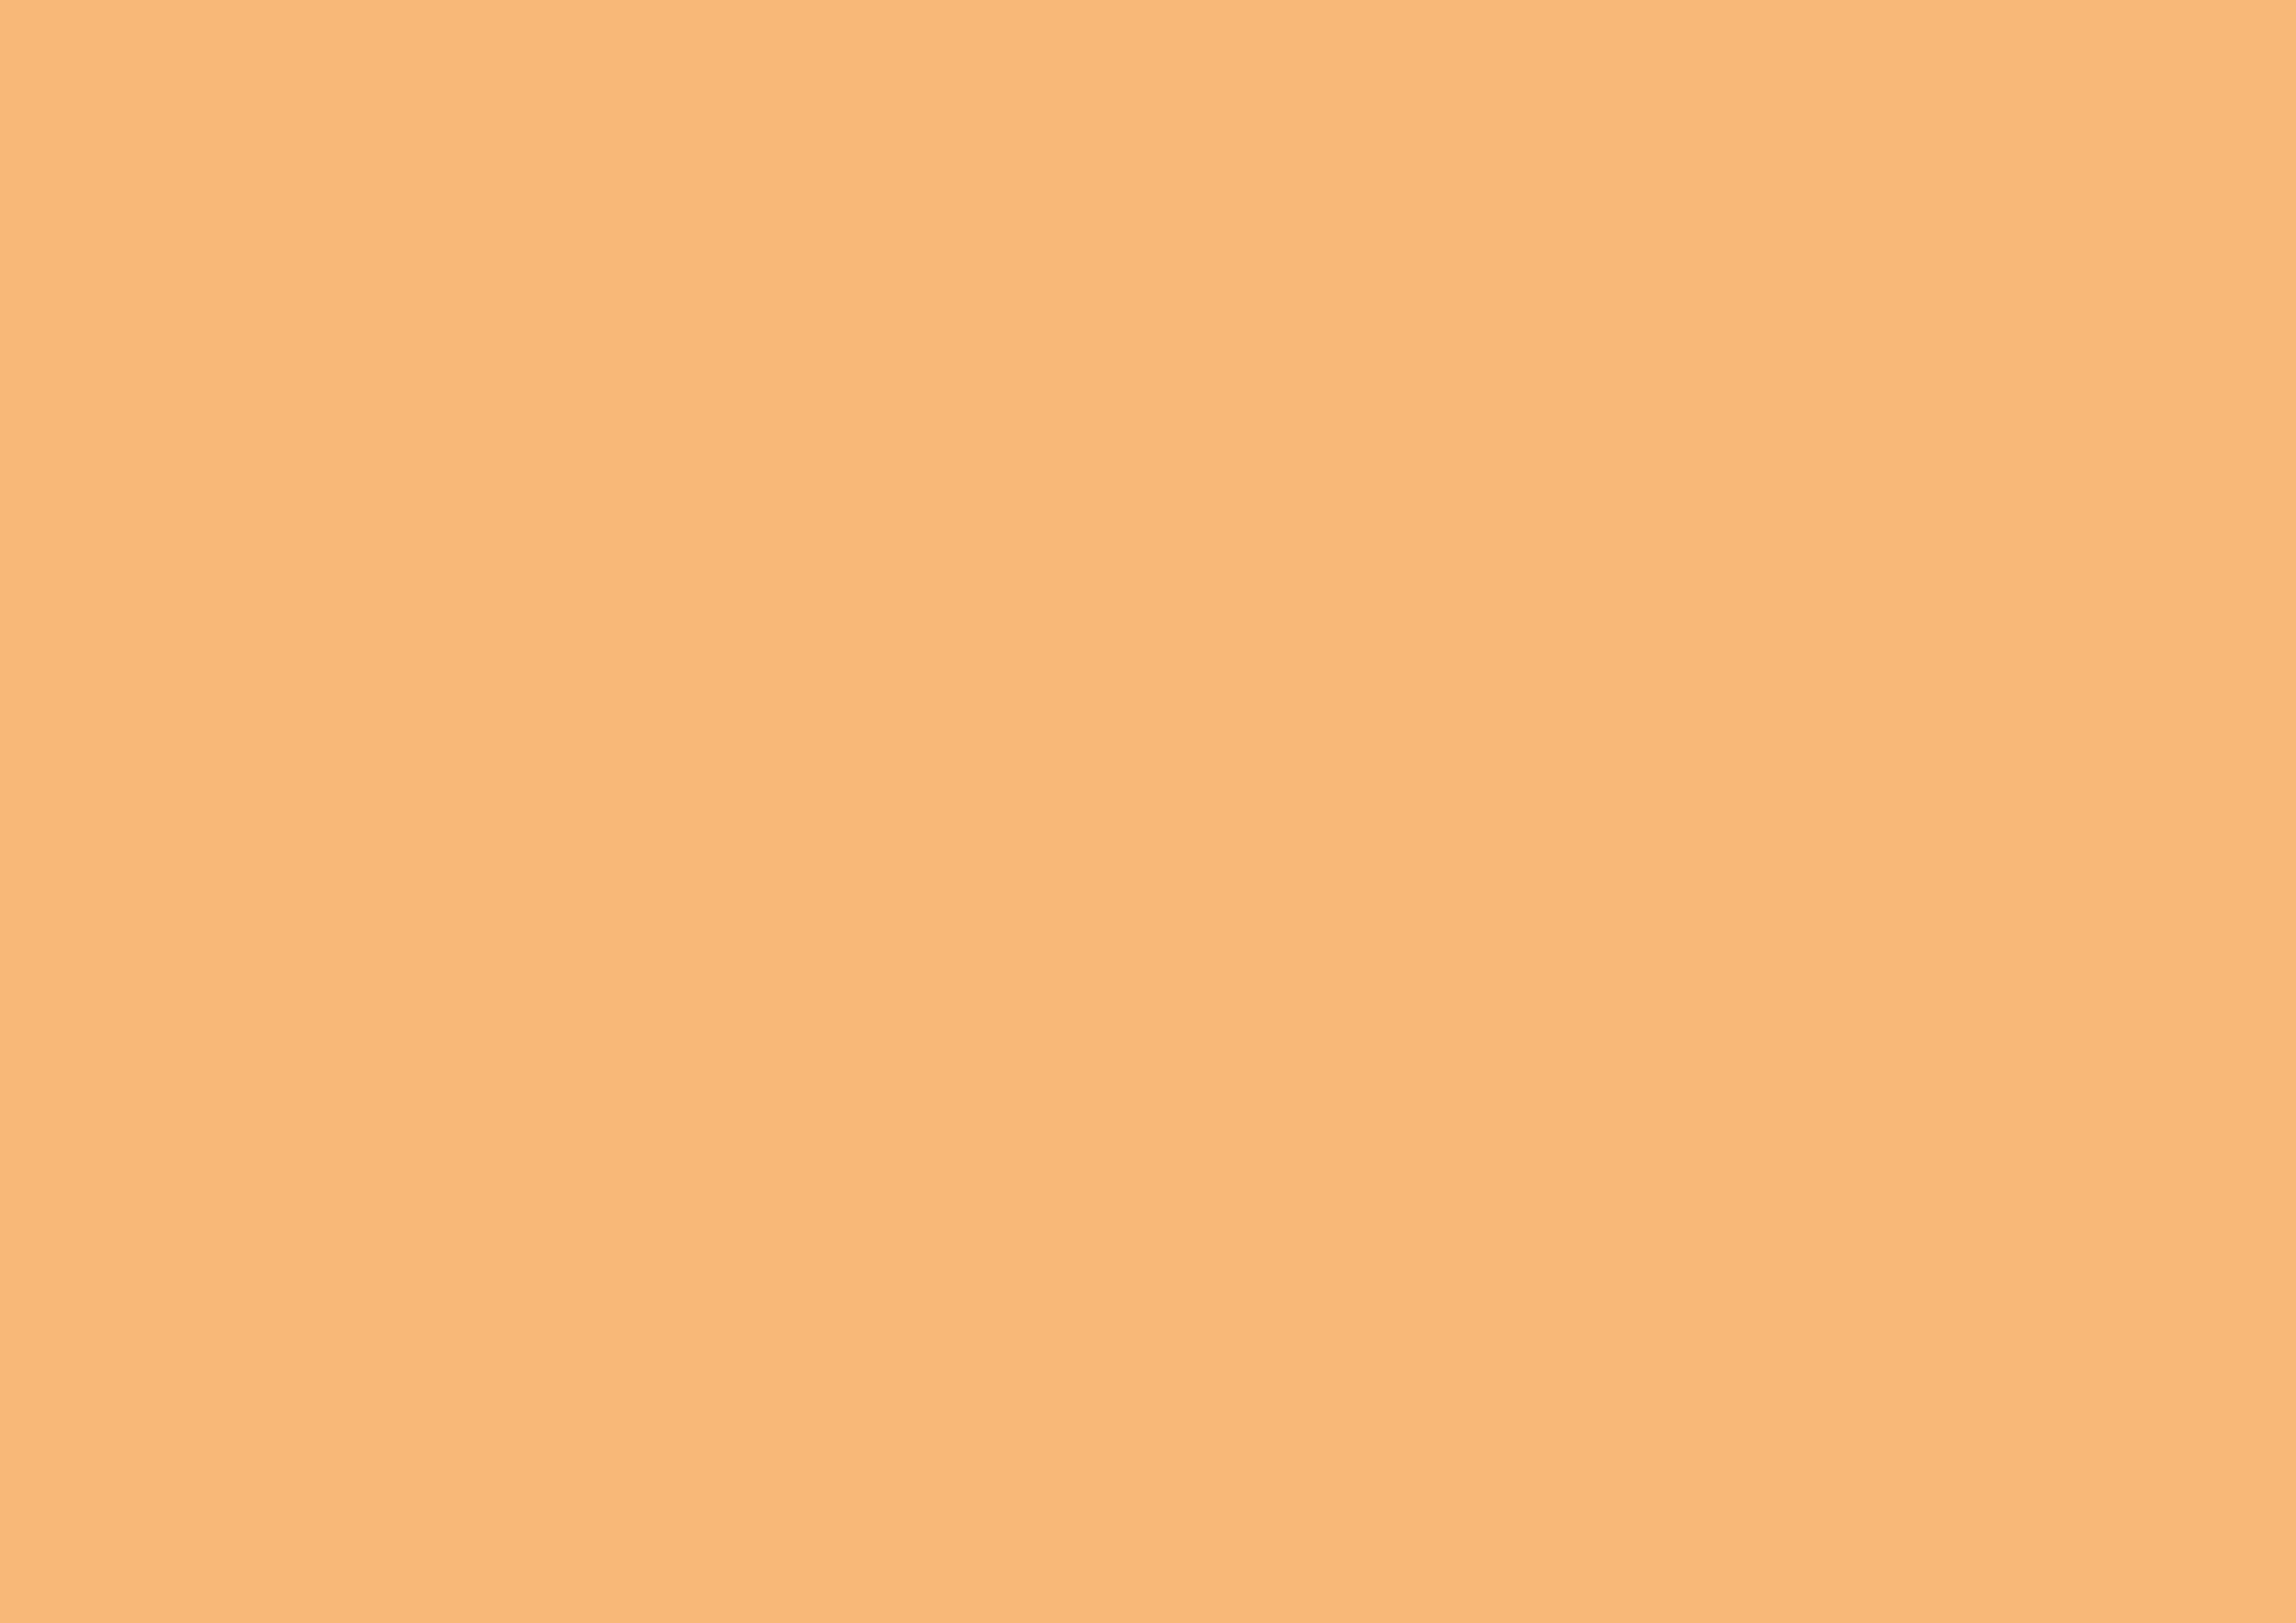 3508x2480 Mellow Apricot Solid Color Background